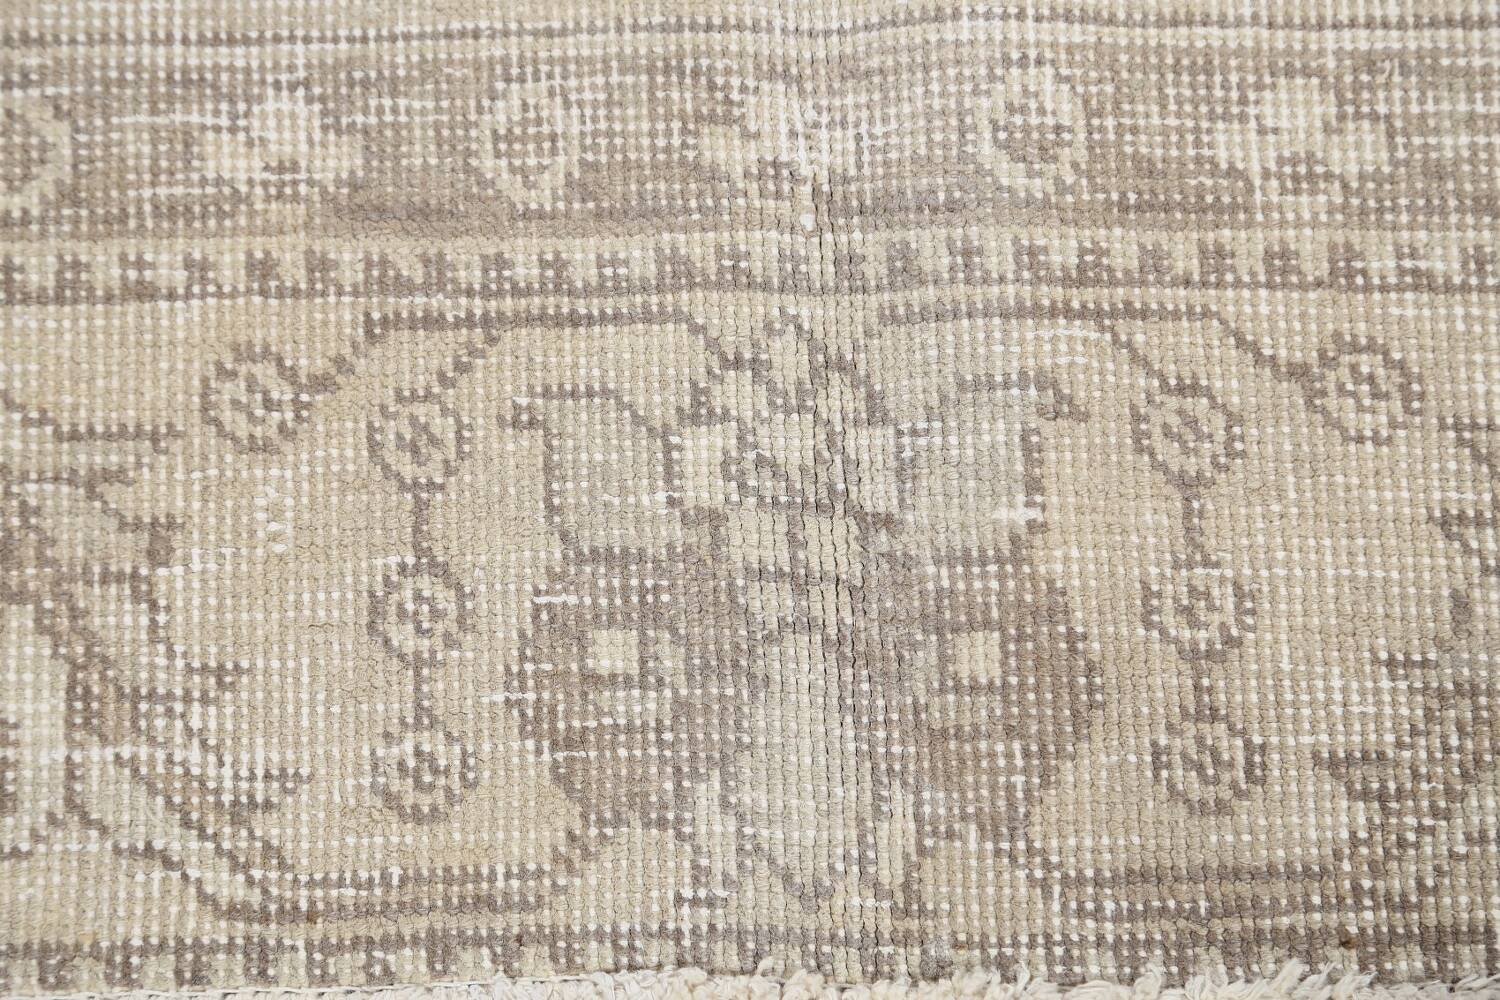 Muted Distressed Floral Tabriz Persian Area Rug 6x9 image 9